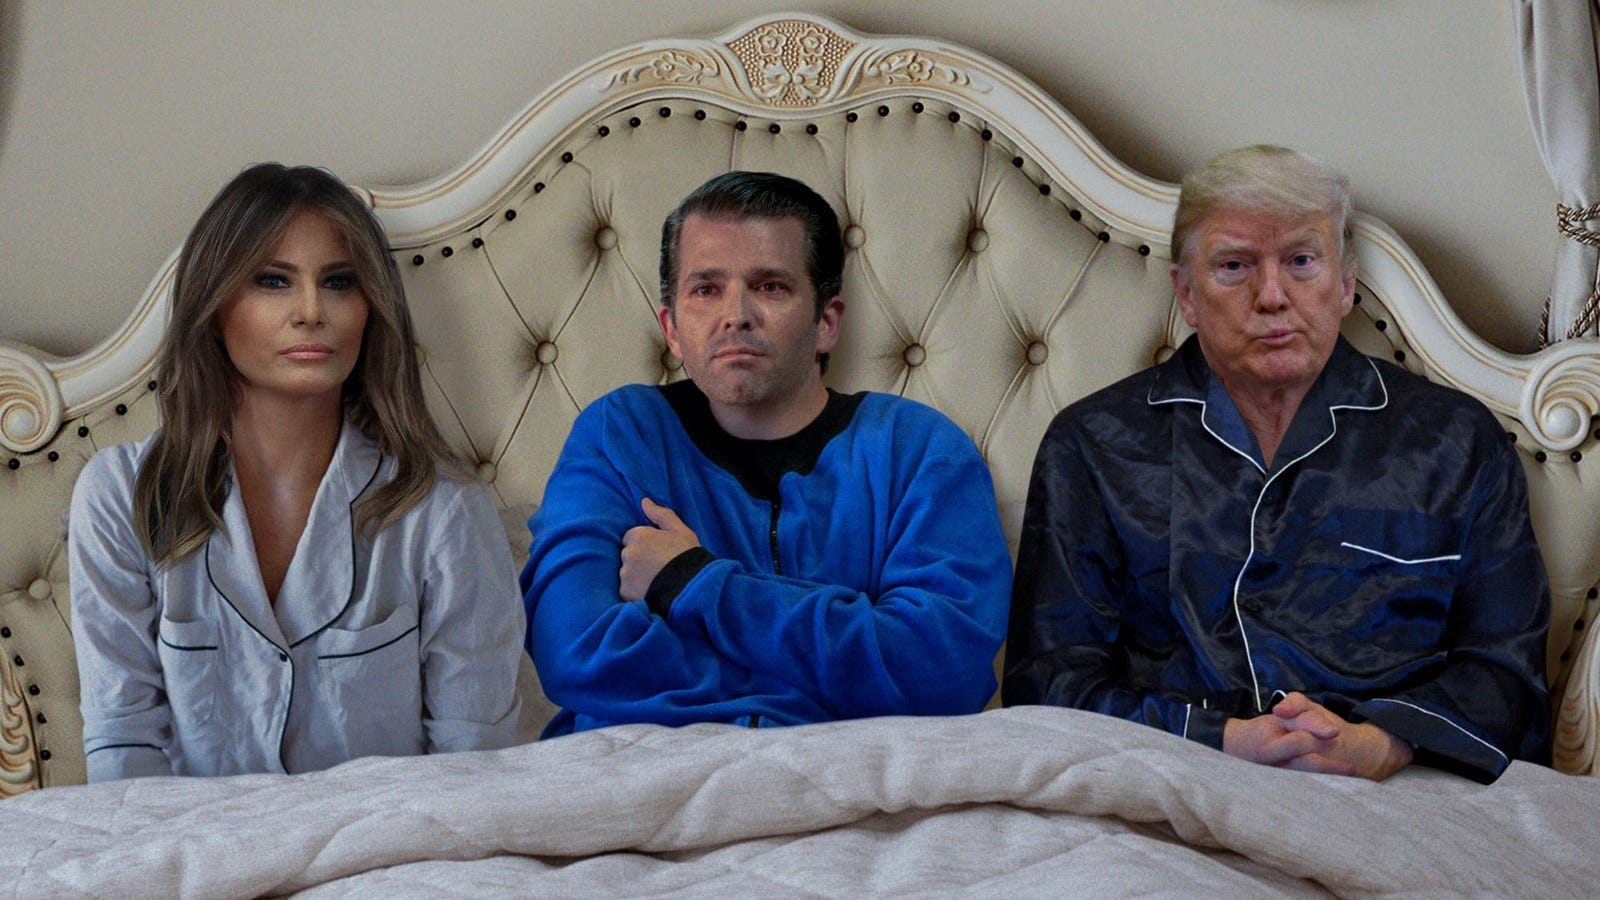 Frightened Don Jr. Asks If He Can Sleep In Dad's Bed After Bad Dream About Being Indicted